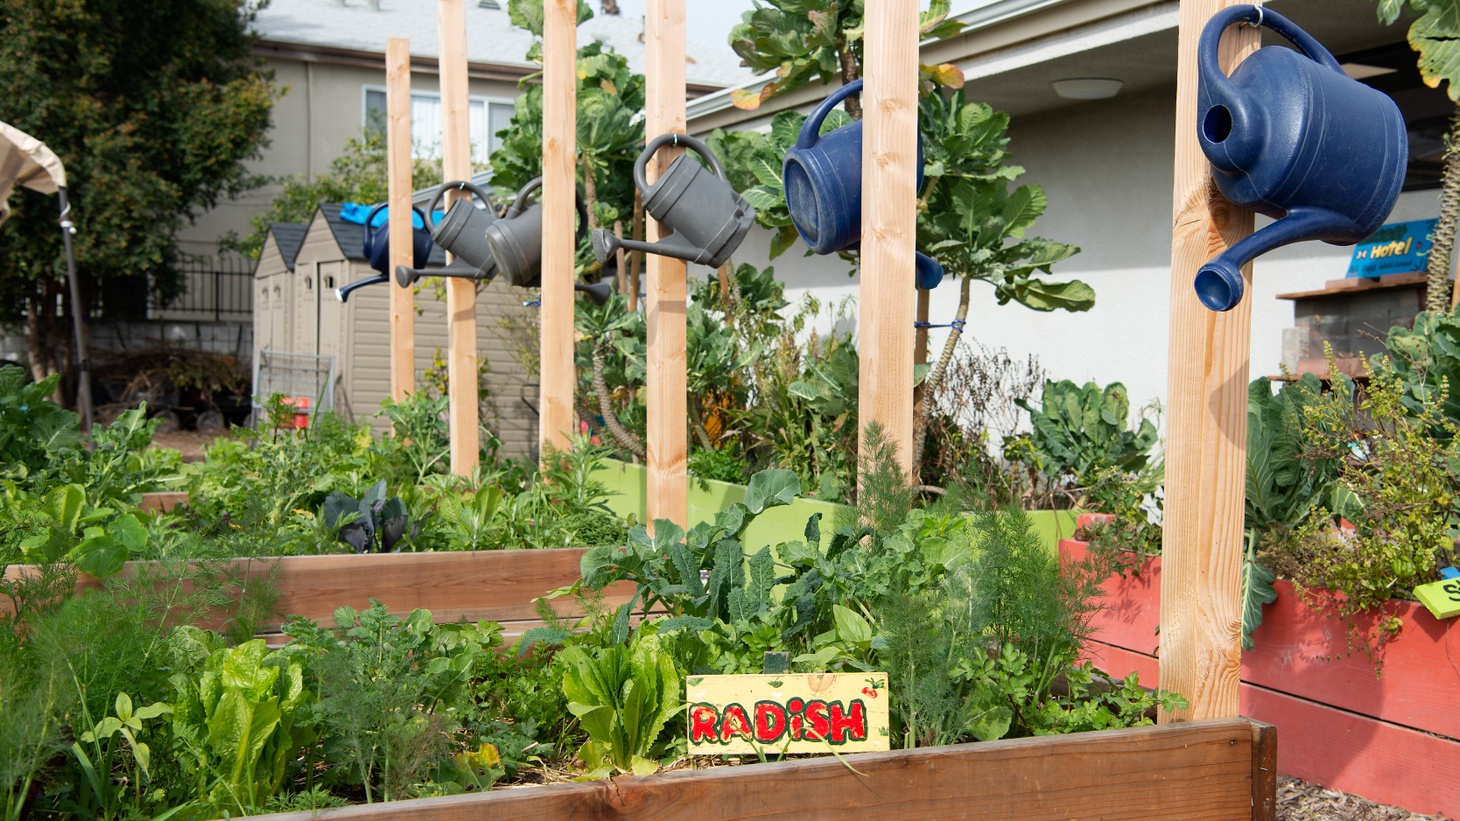 Environmental Charter Middle School - Inglewood (ECMS-I) grows food year-round, producing enough harvest to provide free fresh produce to its school community.